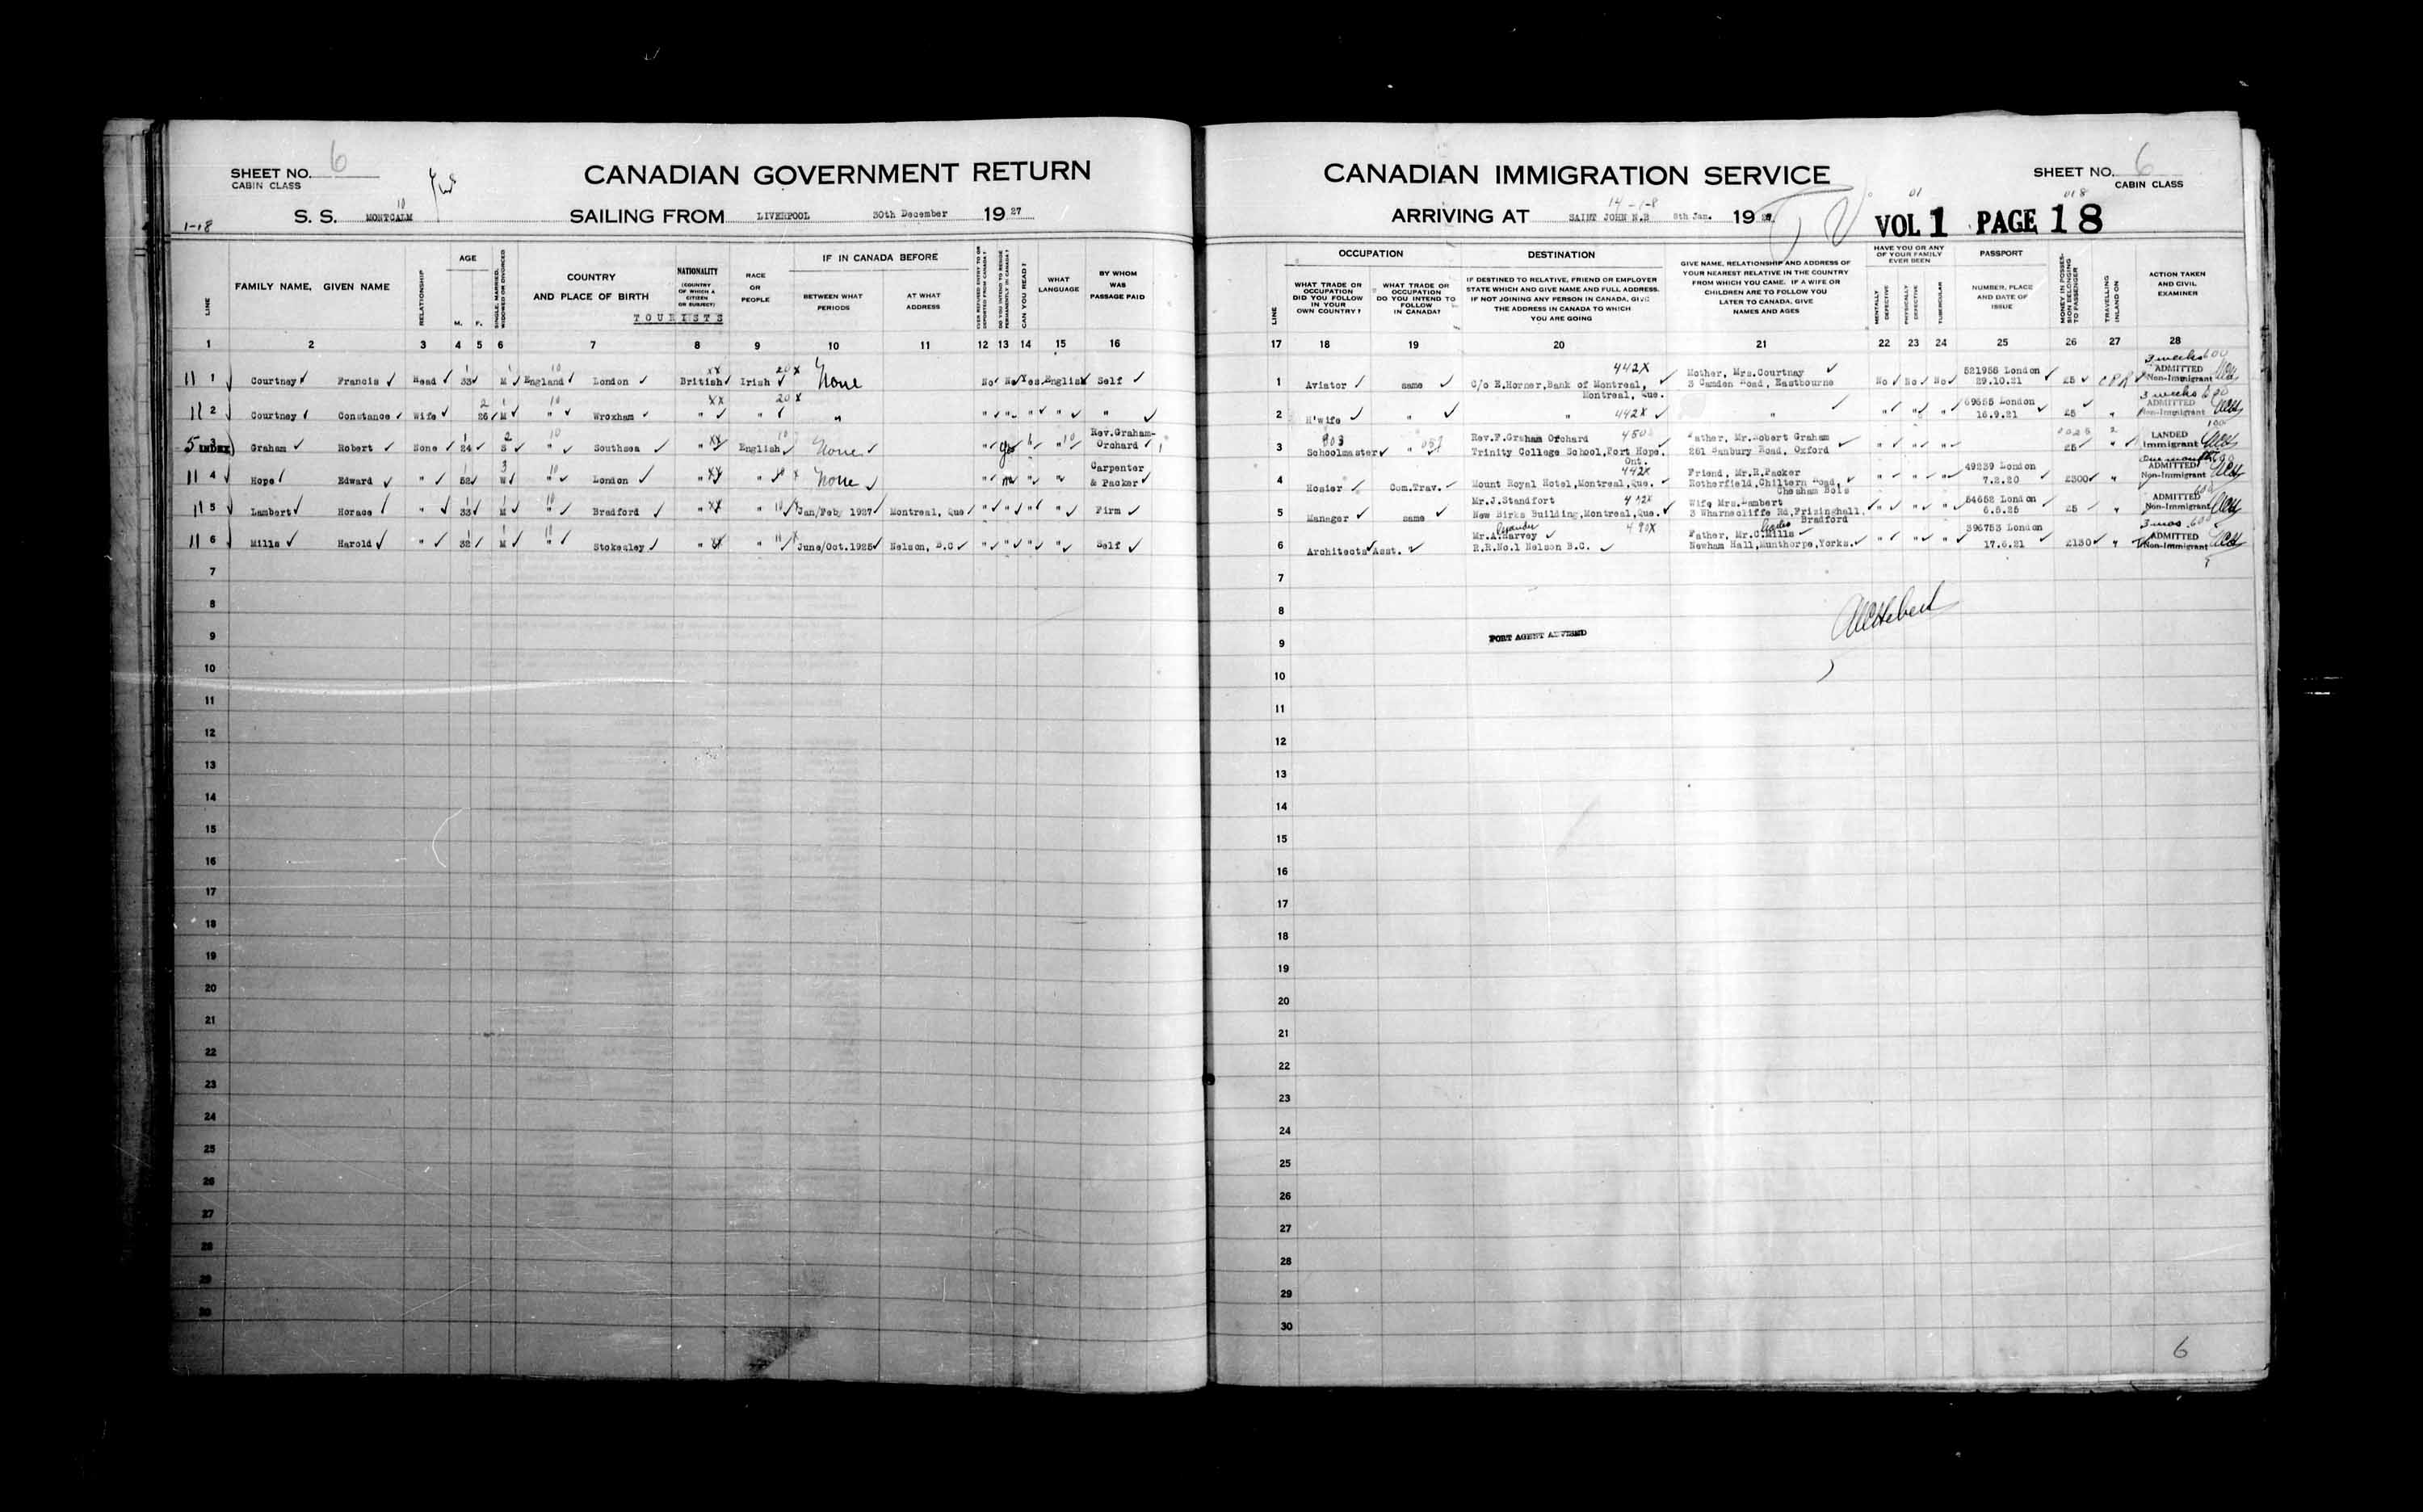 Title: Passenger Lists: Saint John (1925-1935) - Mikan Number: 134836 - Microform: t-14851